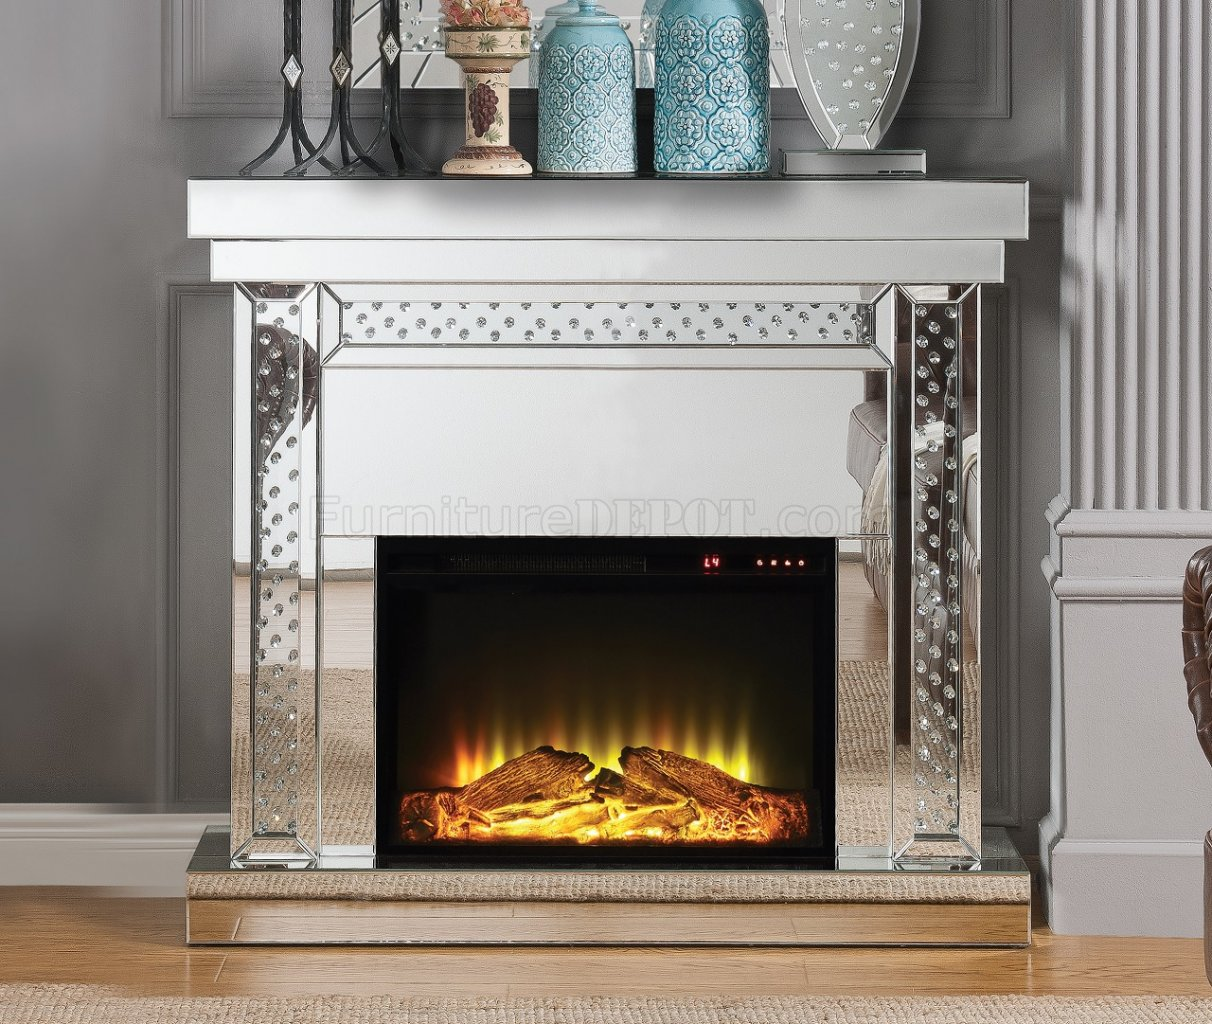 Nysa Fireplace 90272 in Mirror by Acme w/Adjustable